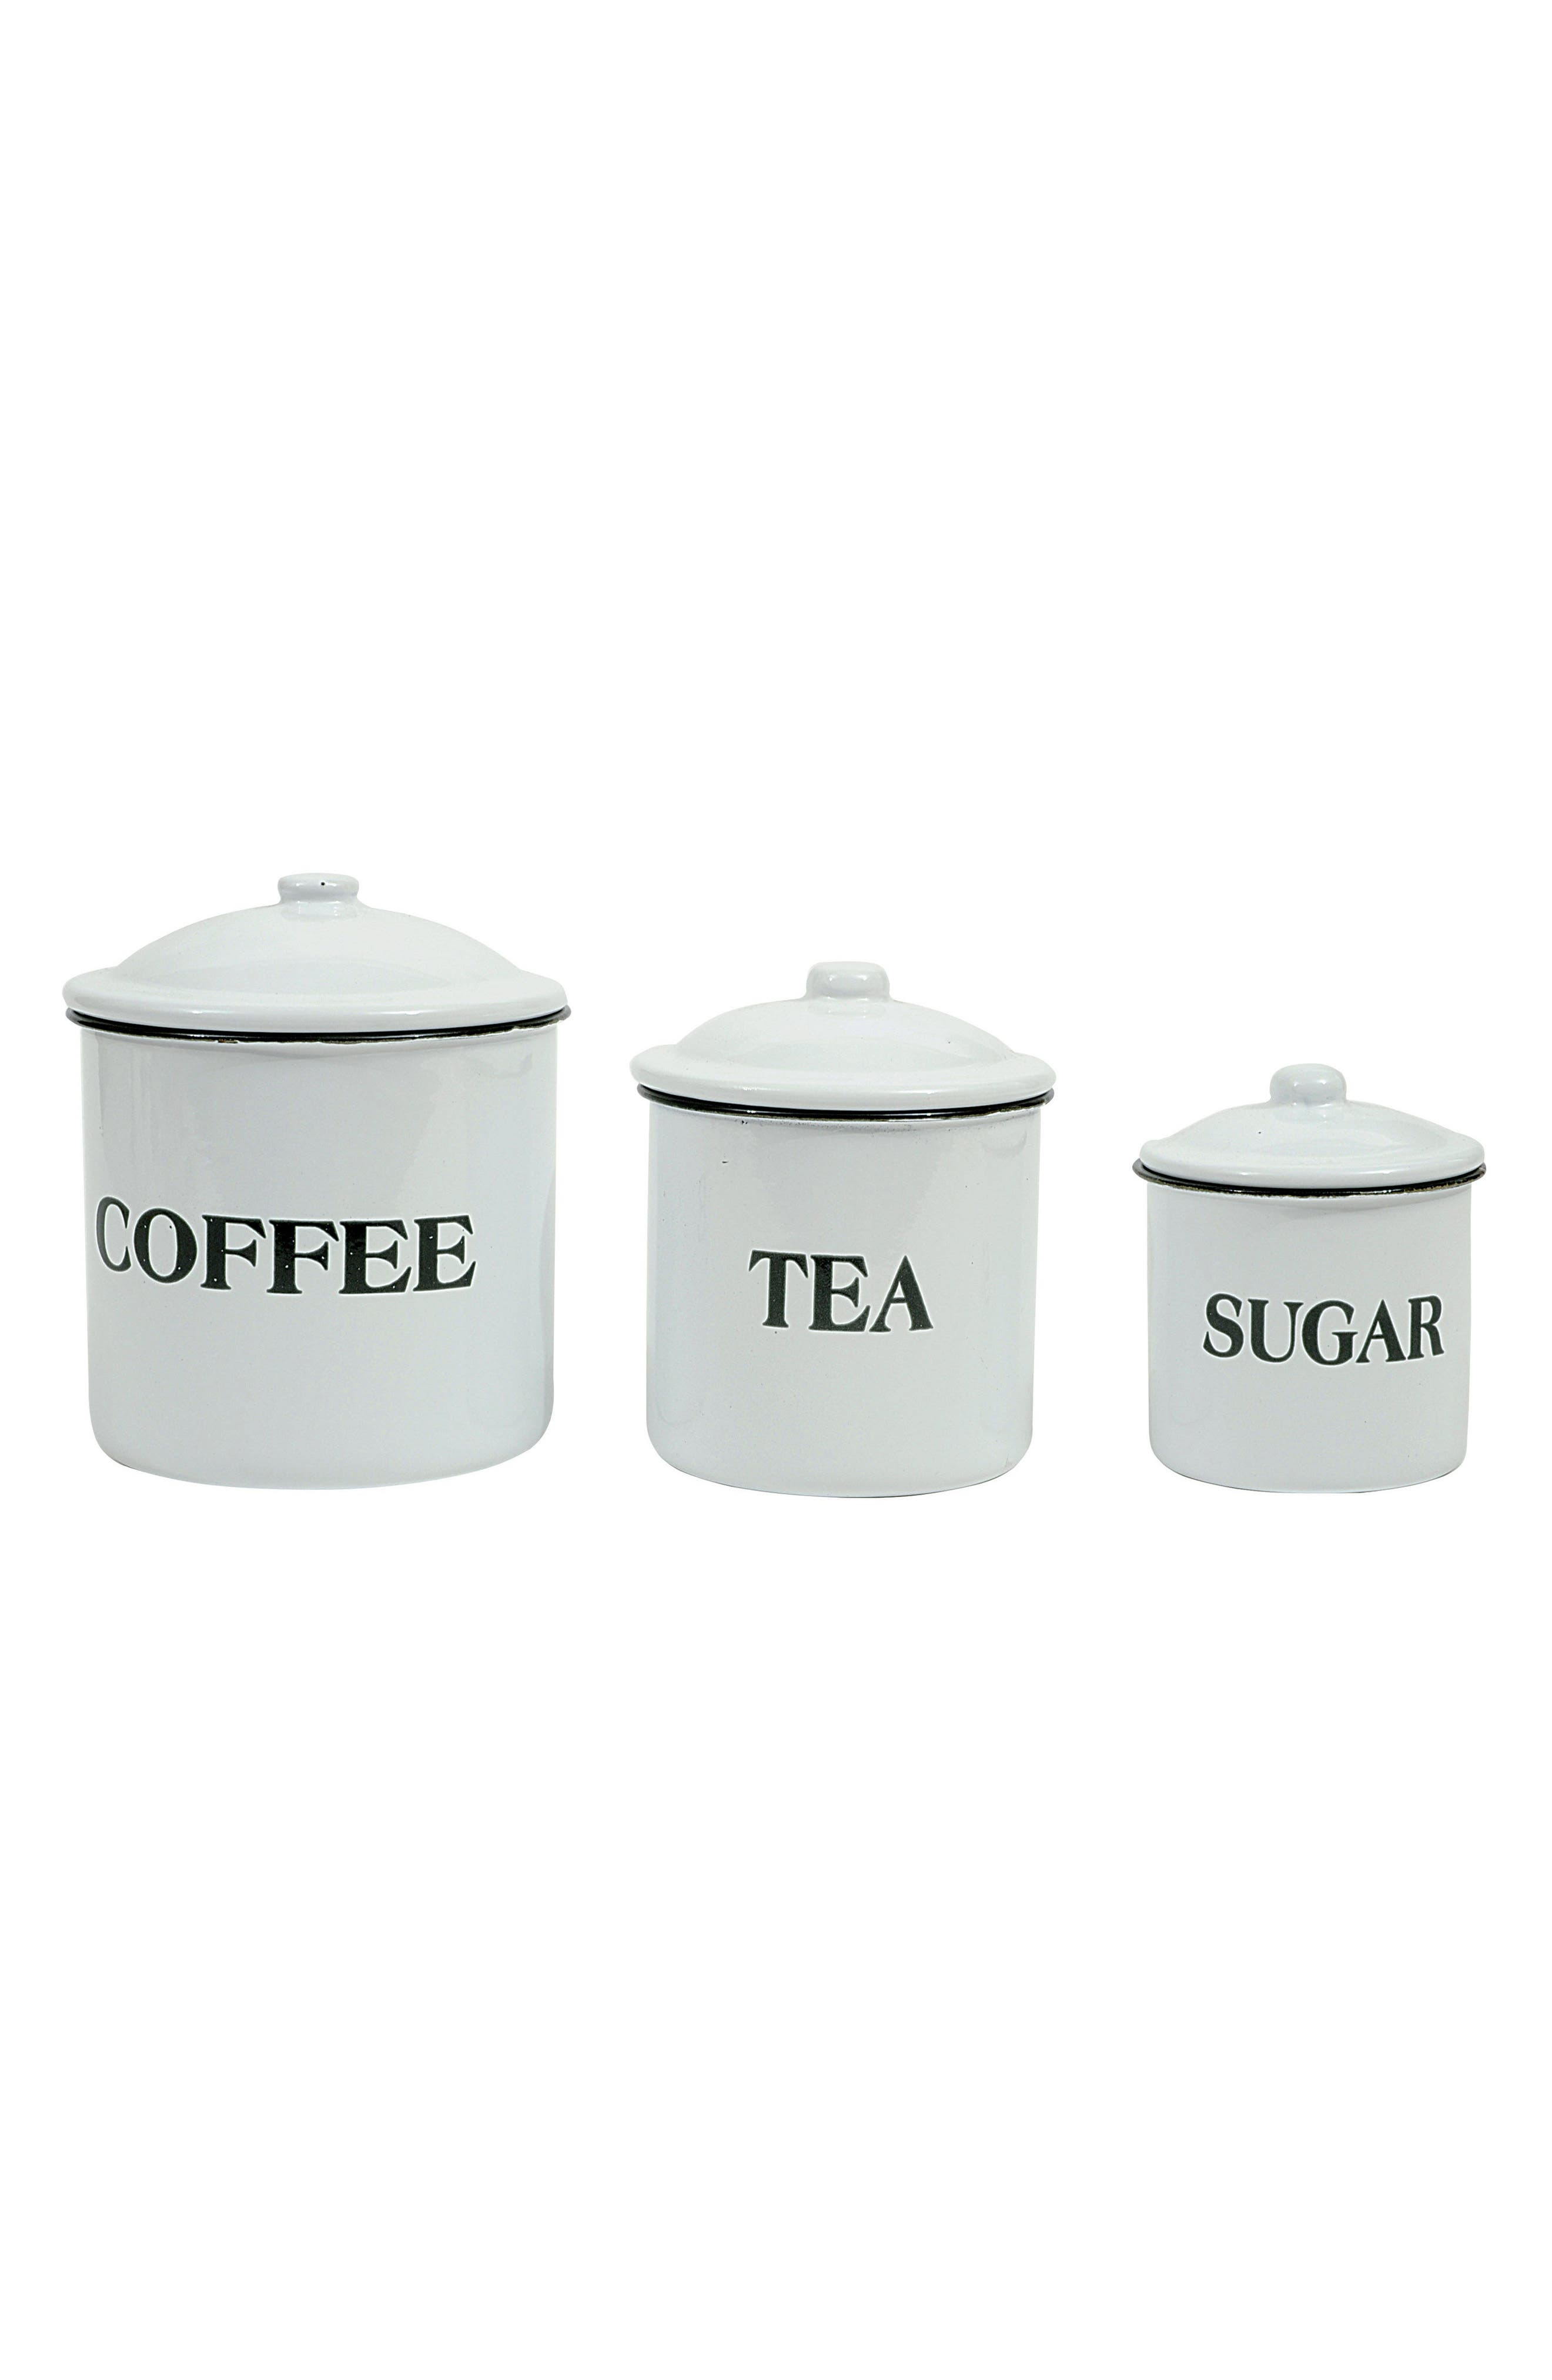 Set of 3 Enamel Containers,                             Main thumbnail 1, color,                             100